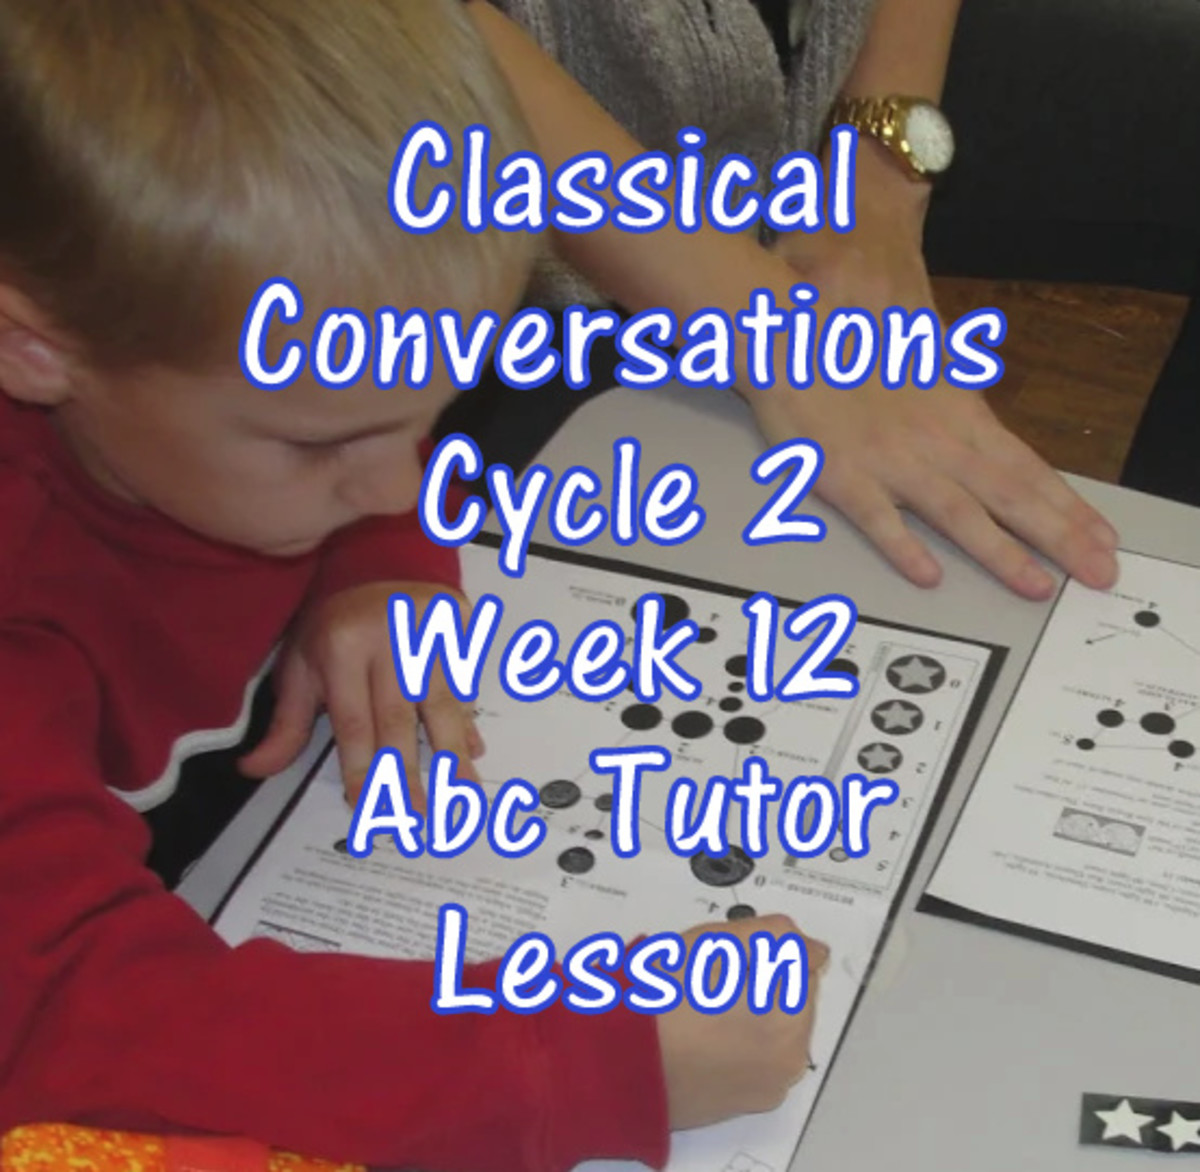 Classical Conversations Cycle 2 Week 12 Abc Tutor Lesson Plan